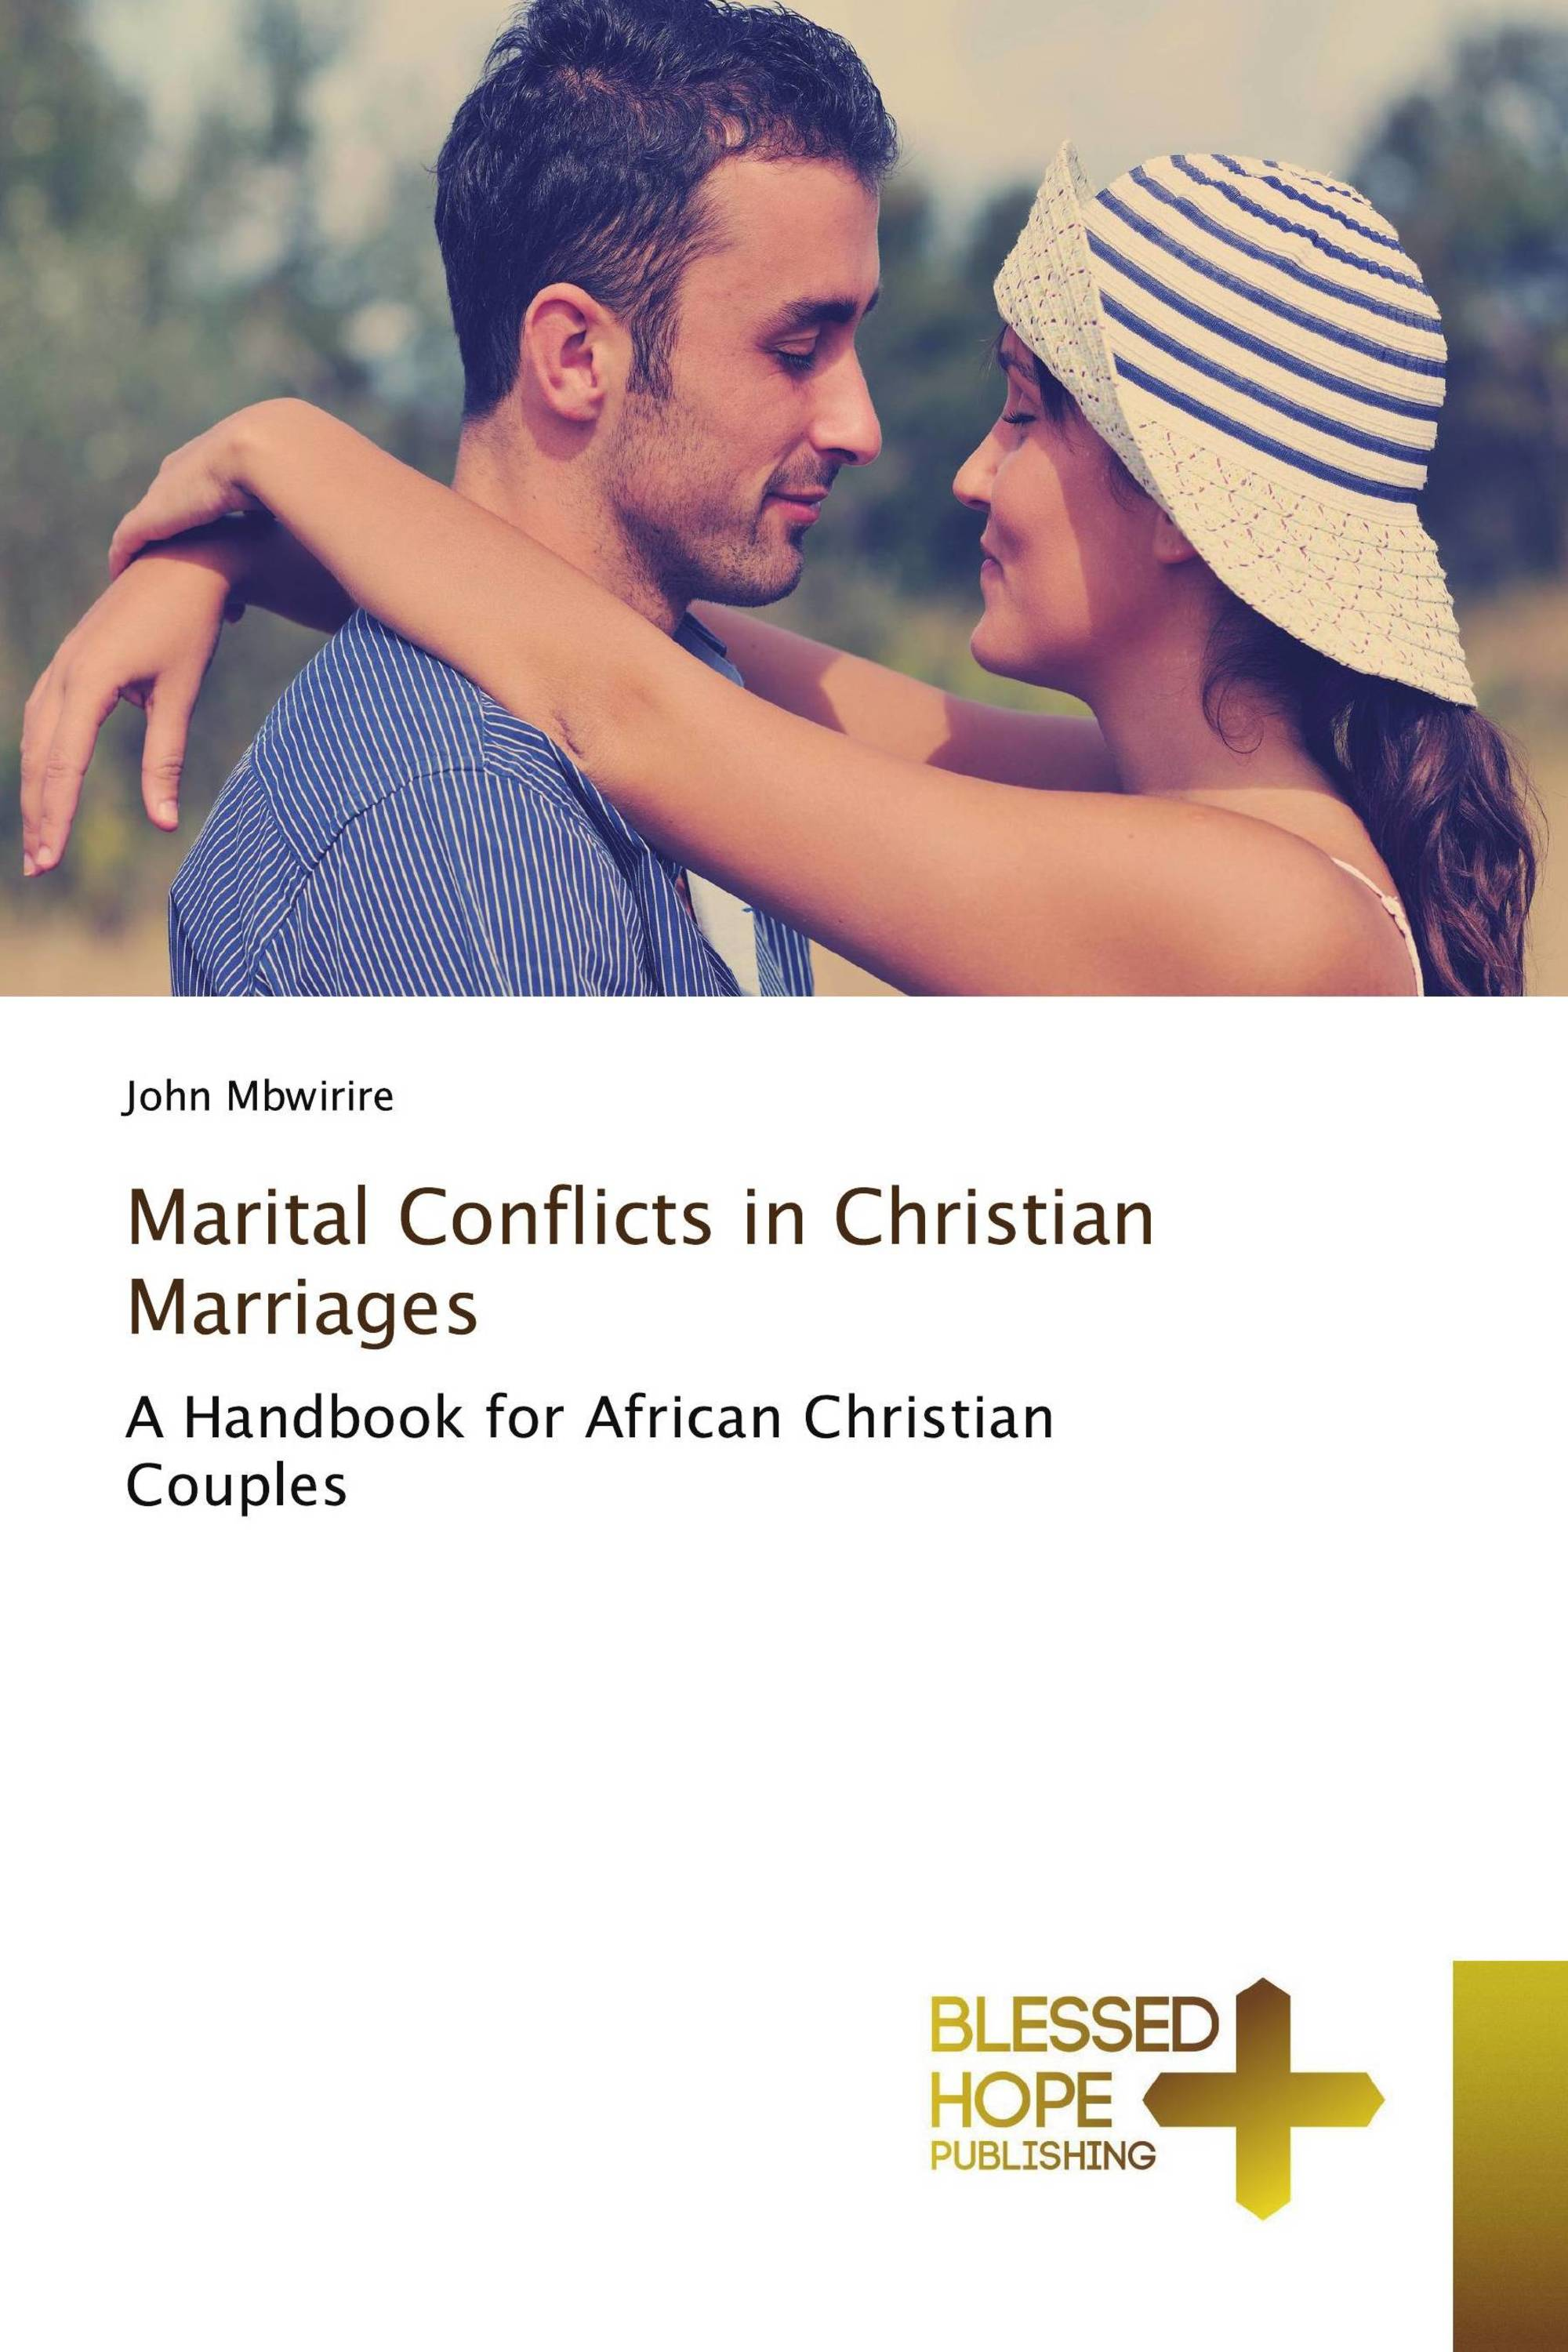 Marital Conflicts in Christian Marriages